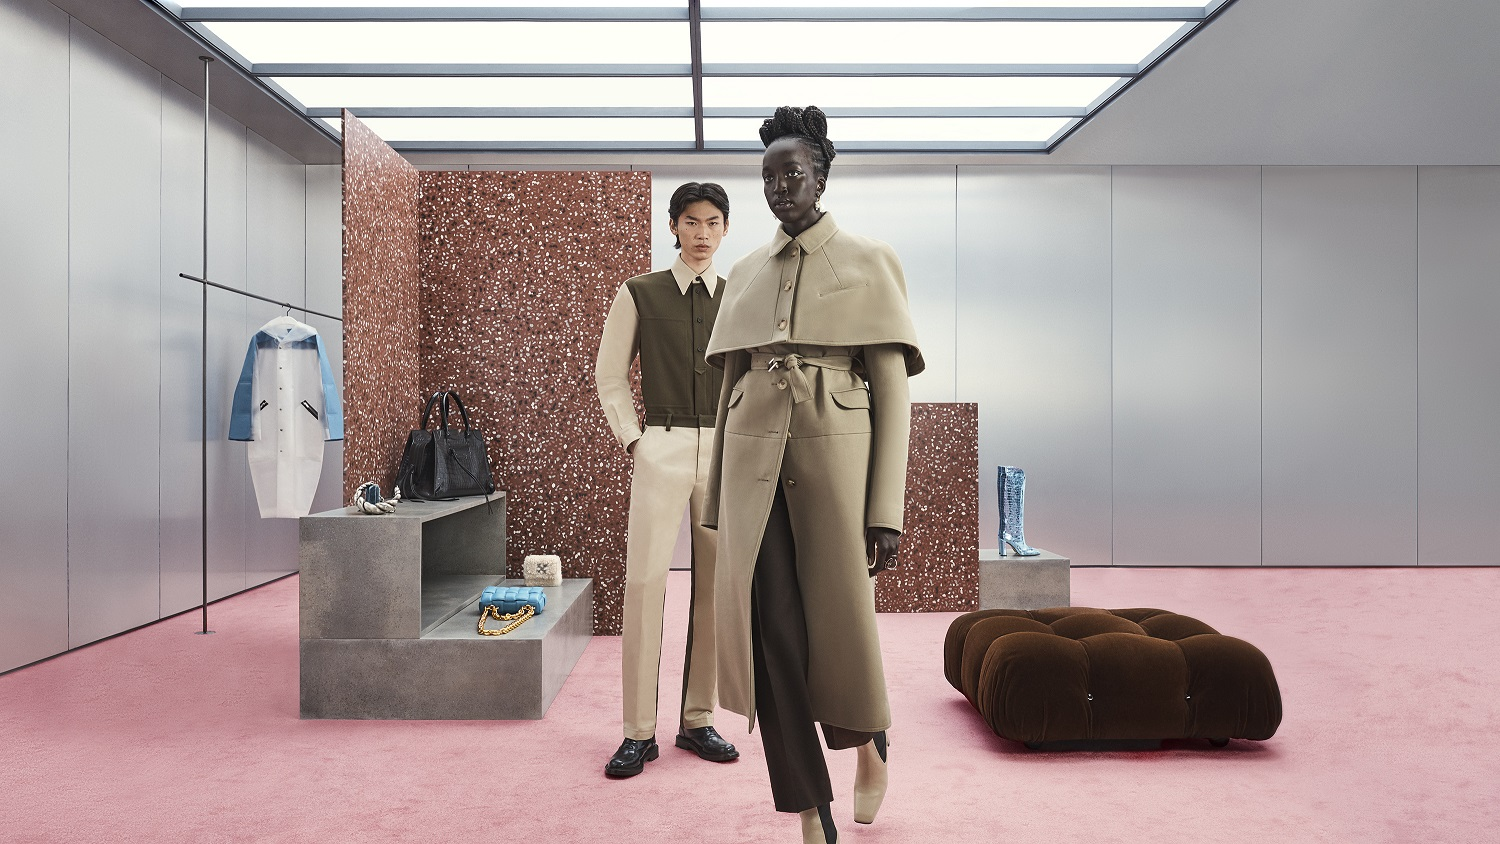 Off the news of a $1.15 billion joint venture with Alibaba and luxury goods conglomerate Richemont that accelerates its push into China, online luxury marketplace Farfetch had even more positive updates to share as it released its third-quarter earnings.